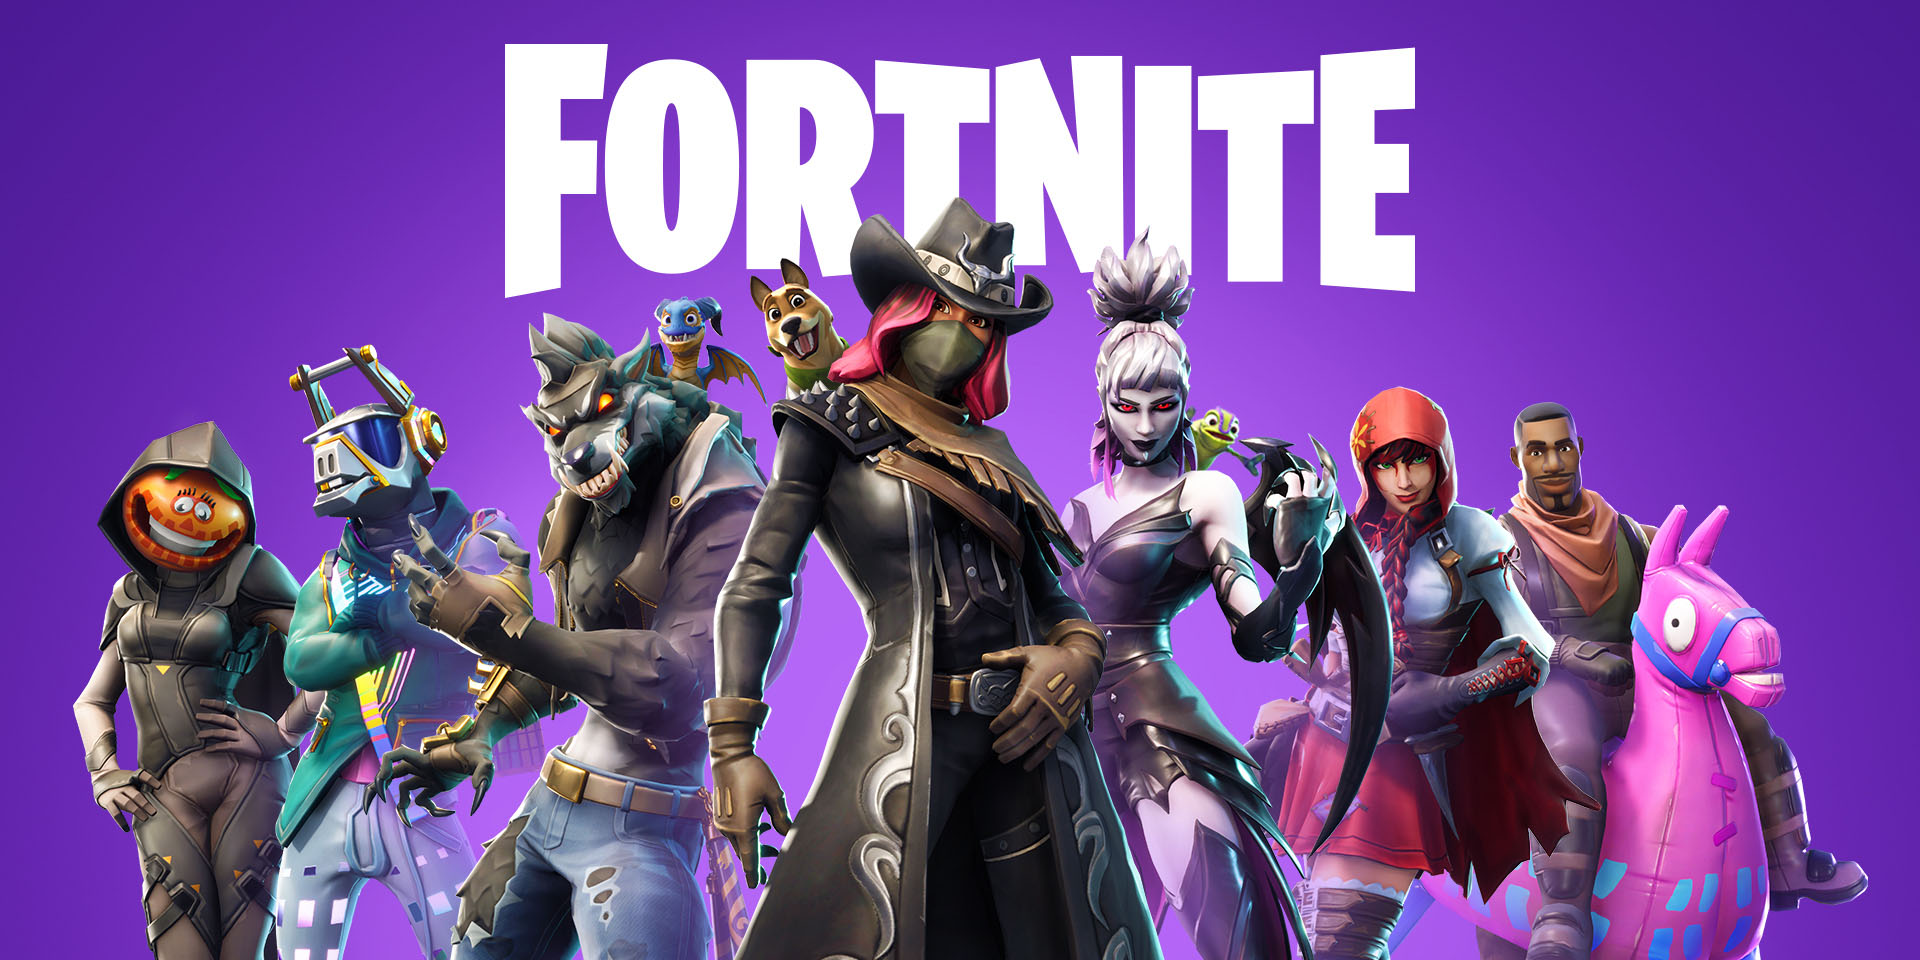 fortnite for android no longer requires an invite as latest update adds quad rocket launcher